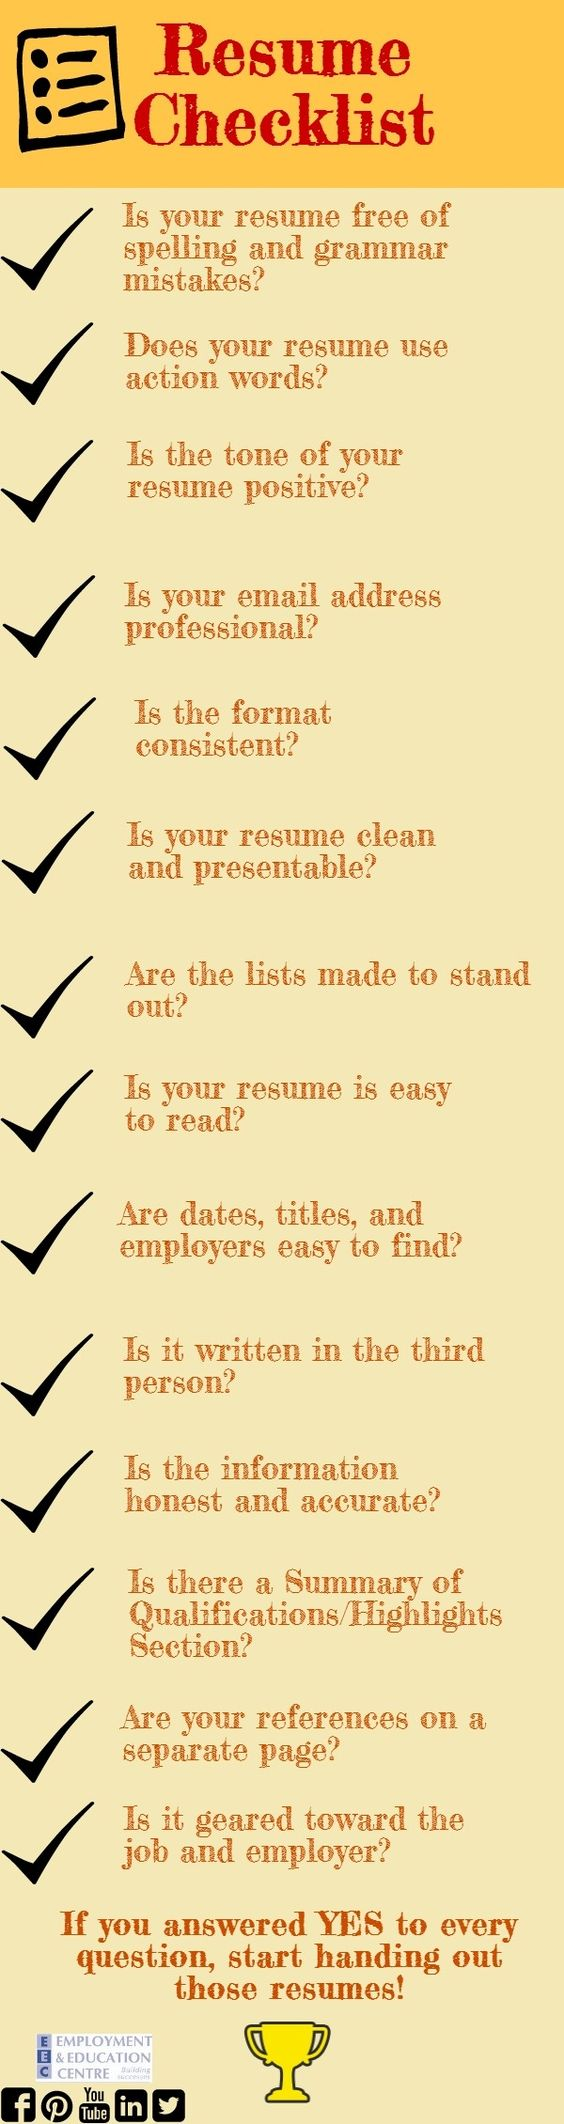 check out this list before you hand out your resume resumetips check out this list before you hand out your resume resumetips jobsearchtips